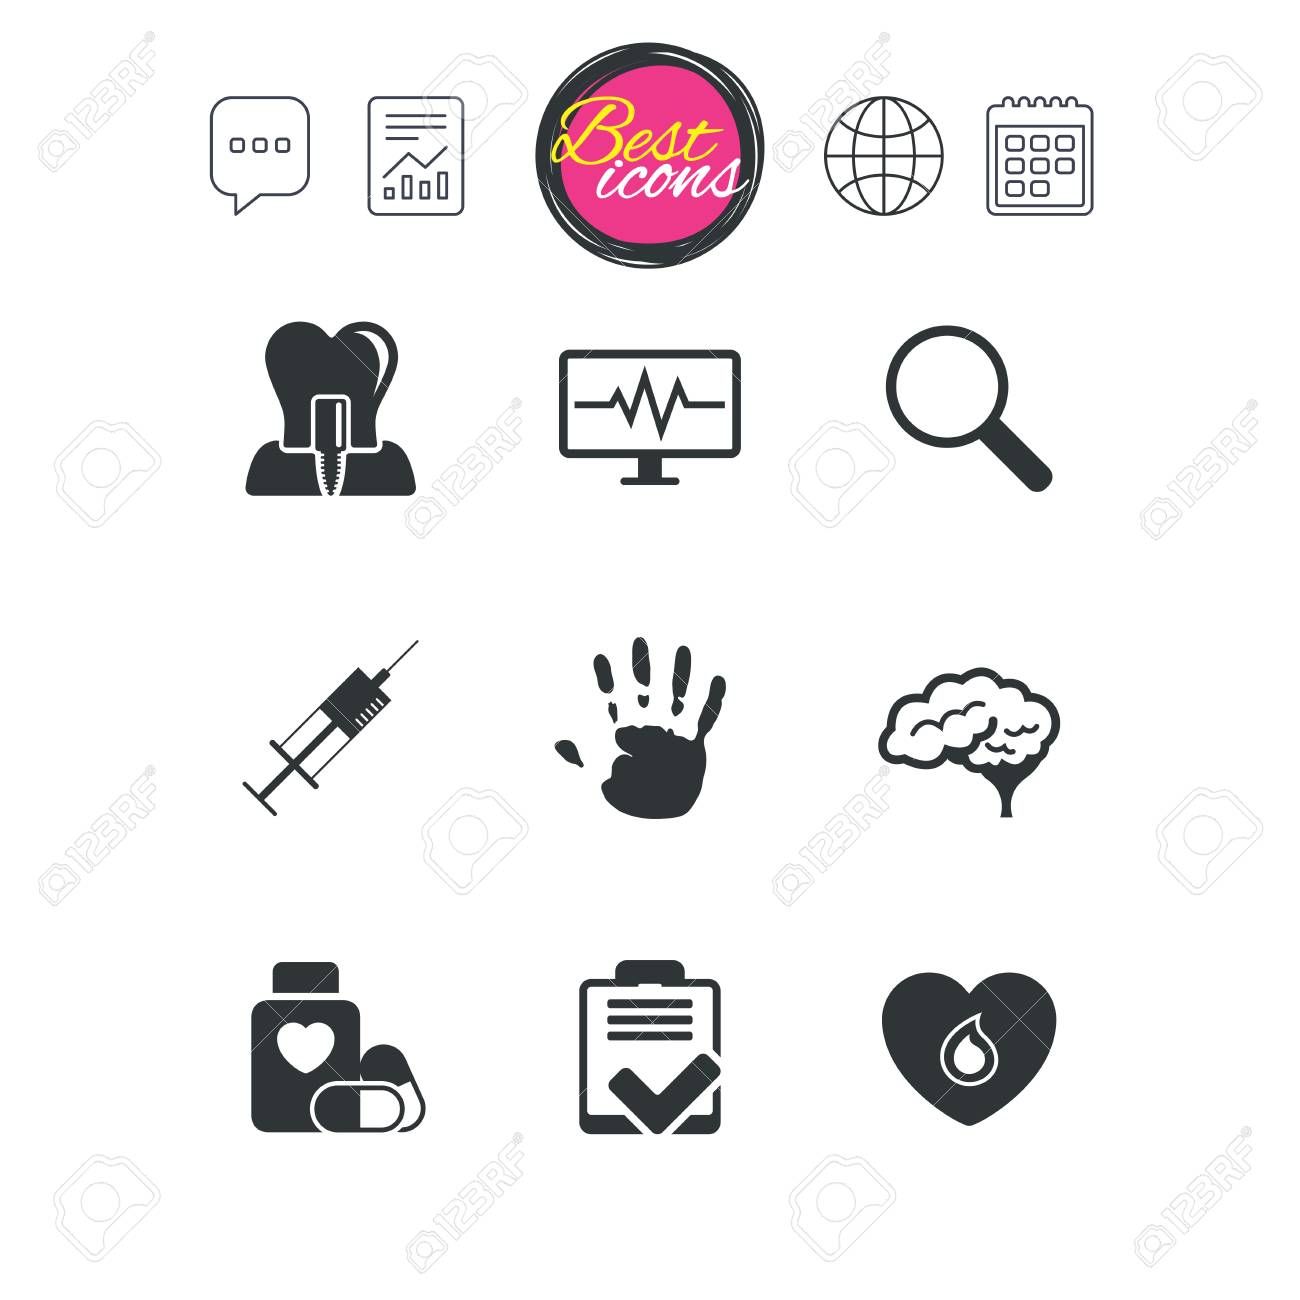 Chat speech bubble report and calendar signs medicine medical chat speech bubble report and calendar signs medicine medical health and diagnosis icons biocorpaavc